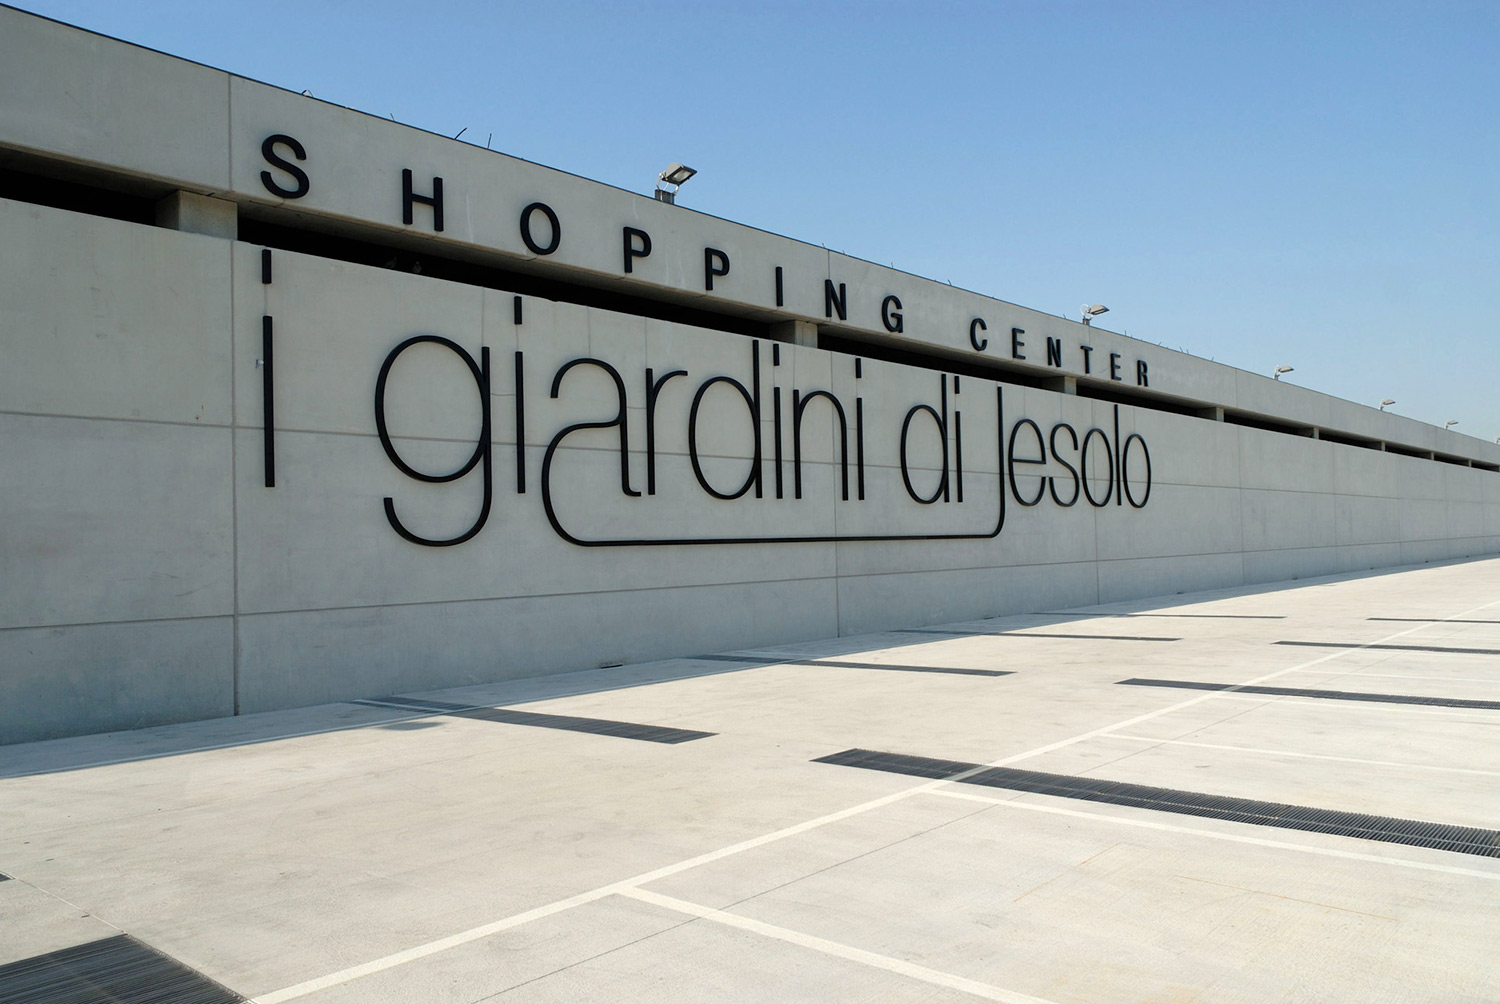 Shopping Center I giardini di Jesolo